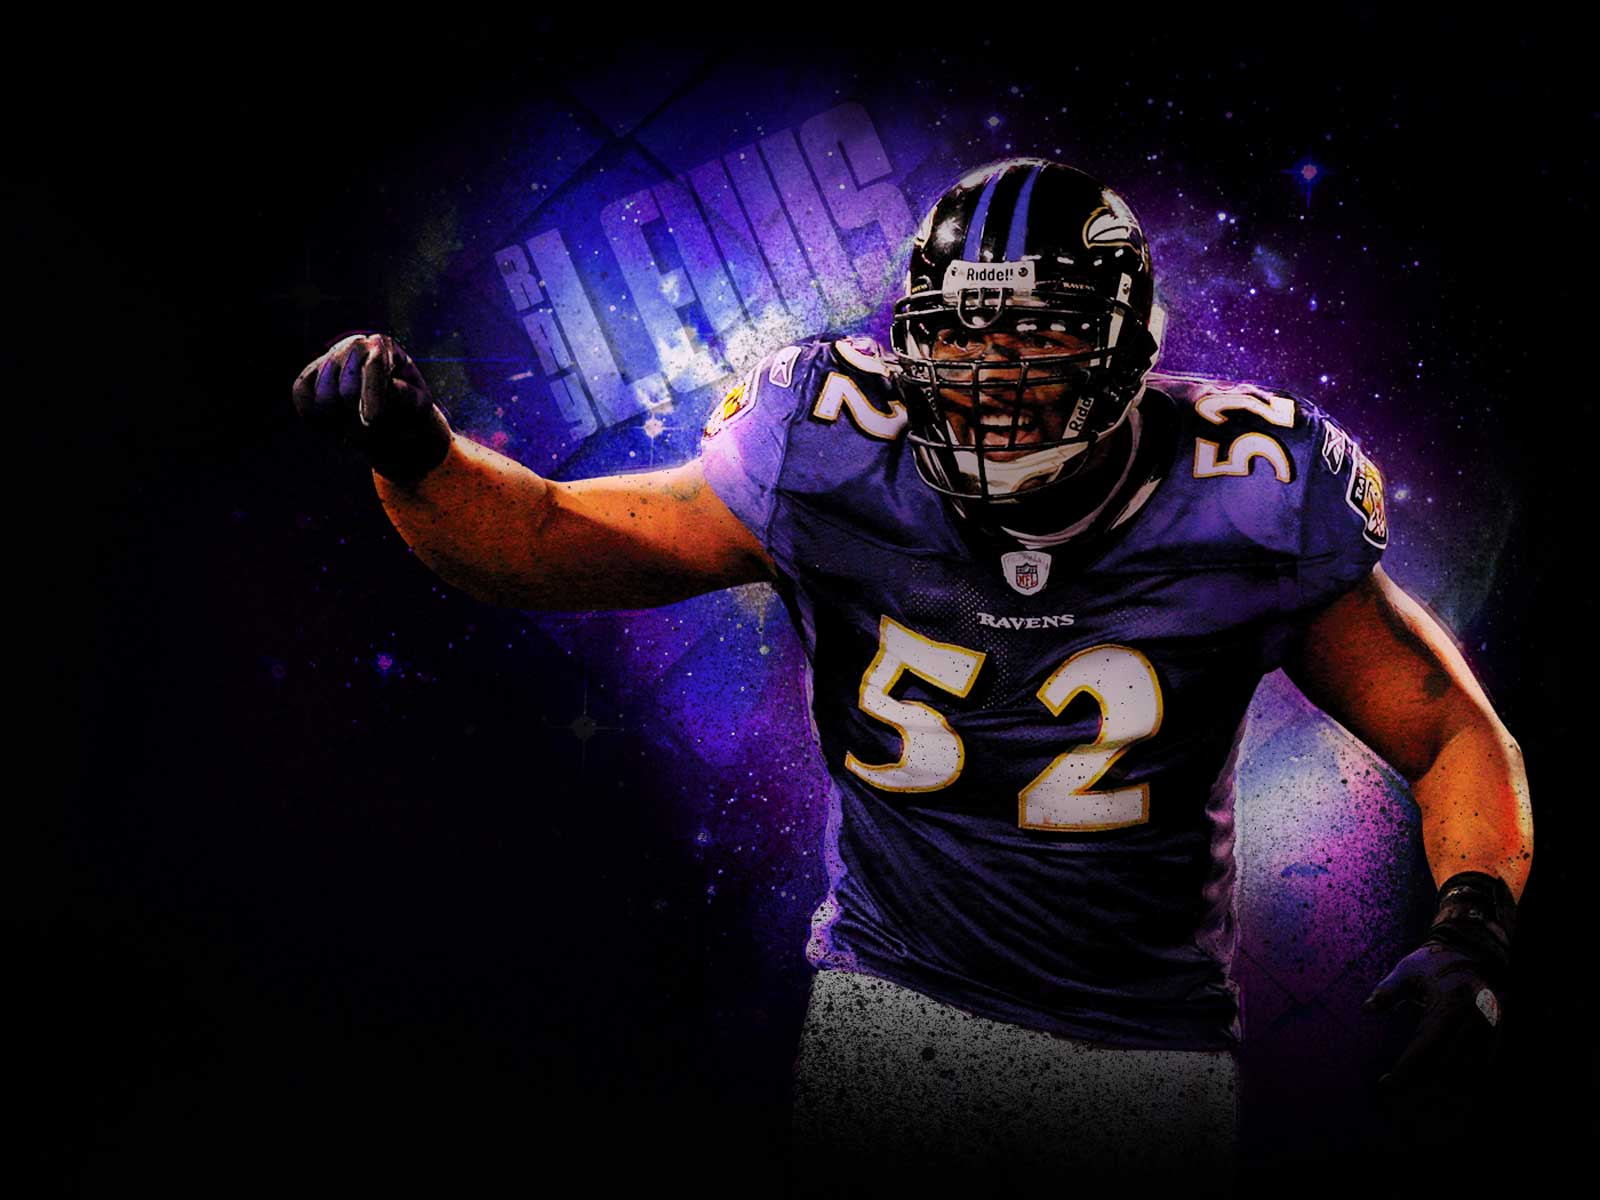 Baltimore Ravens NFL Player Wallpaper HD | Torneof1